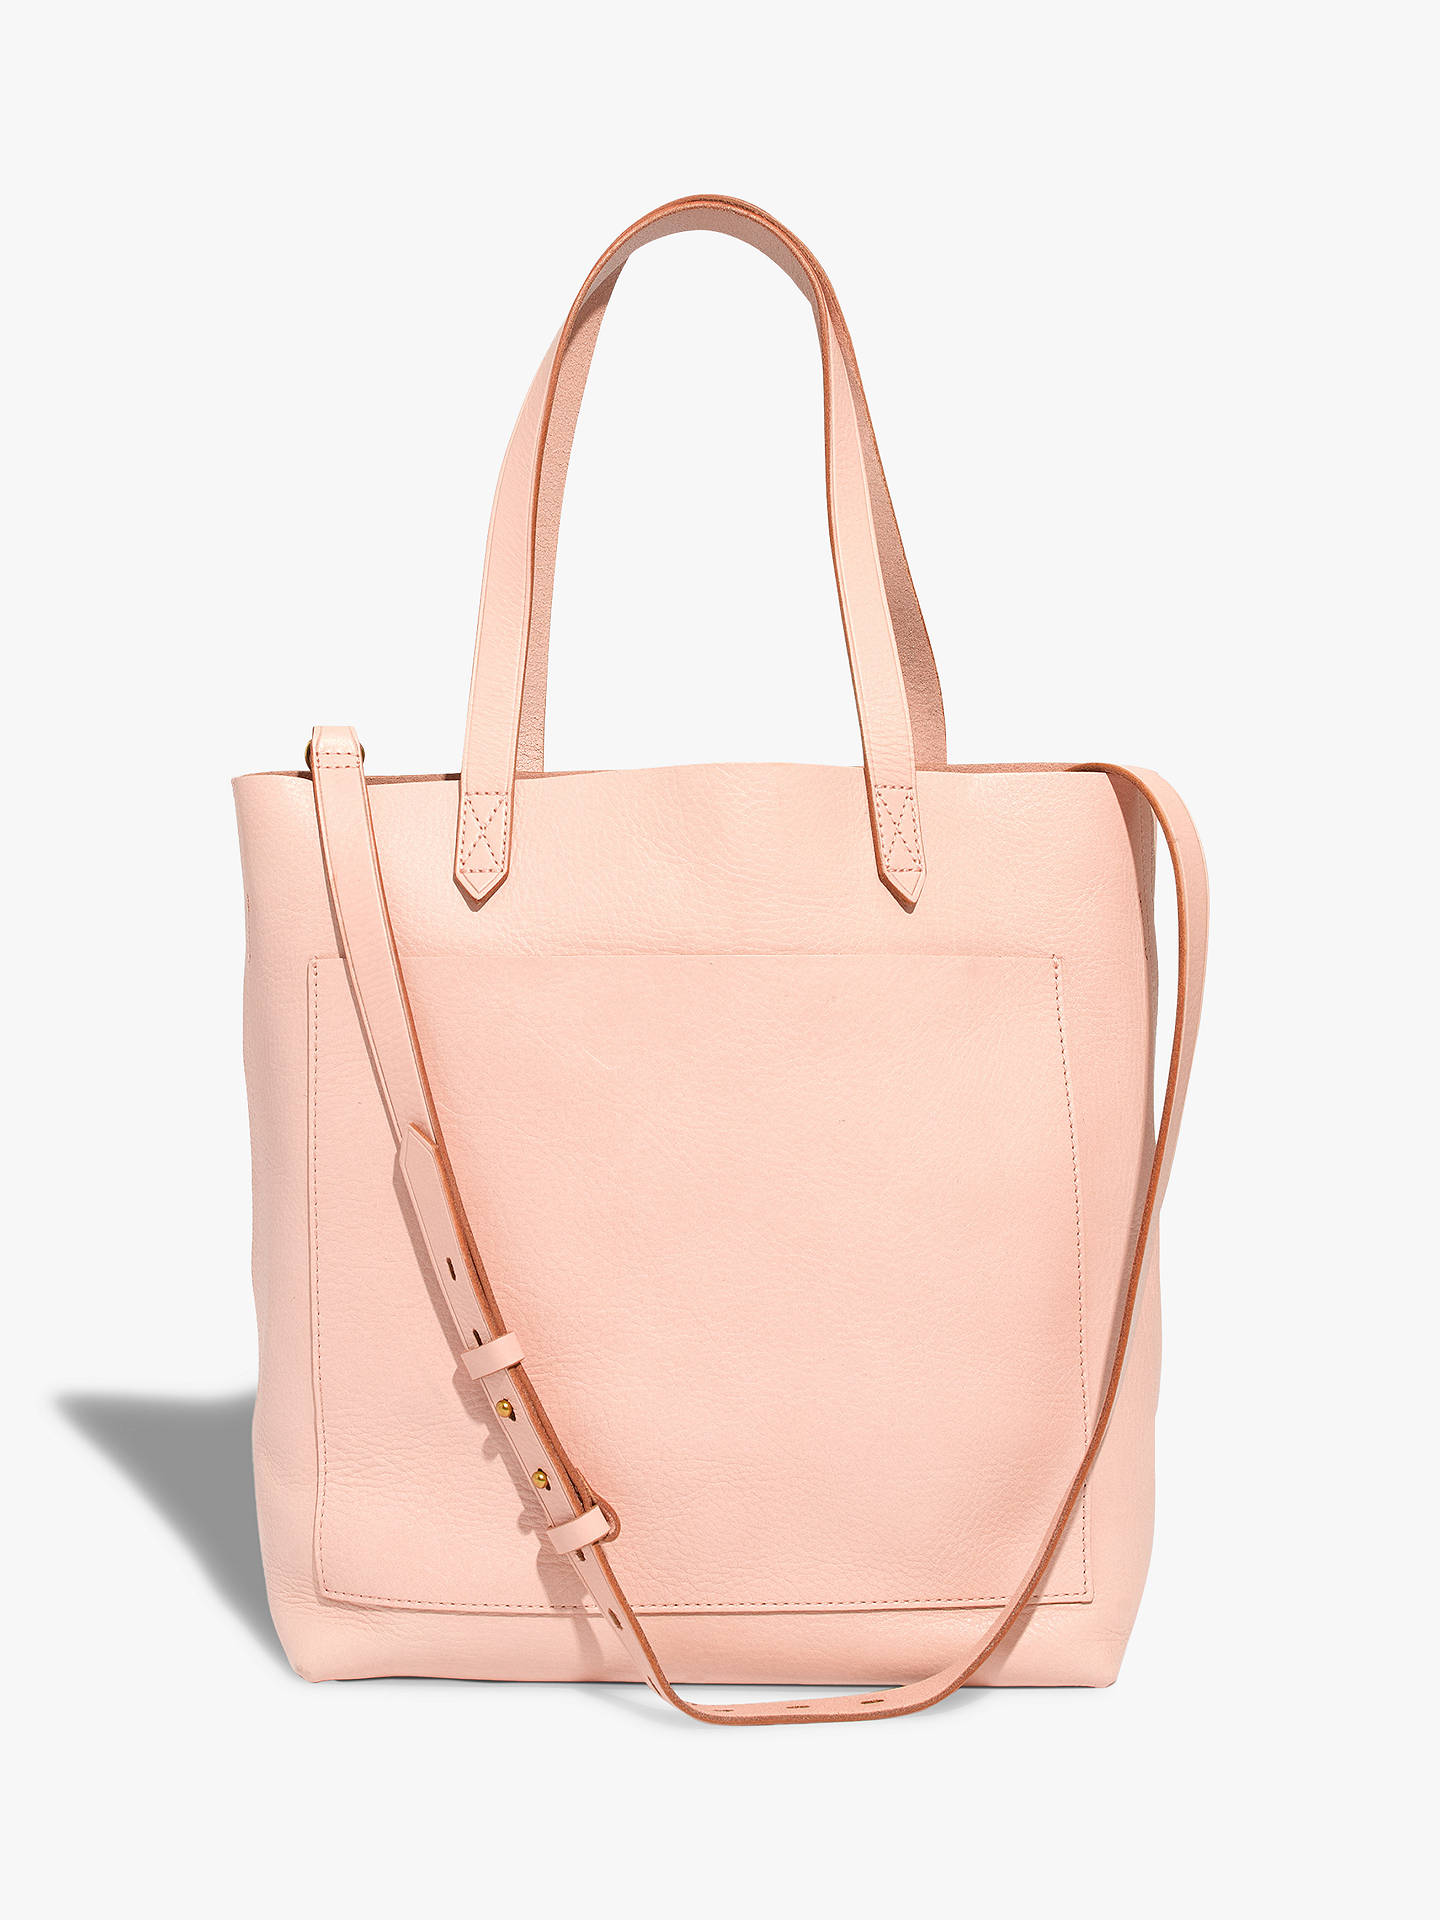 59adf95be Buy Madewell Leather Medium Transport Tote Bag, Sheer Pink Online at  johnlewis.com ...